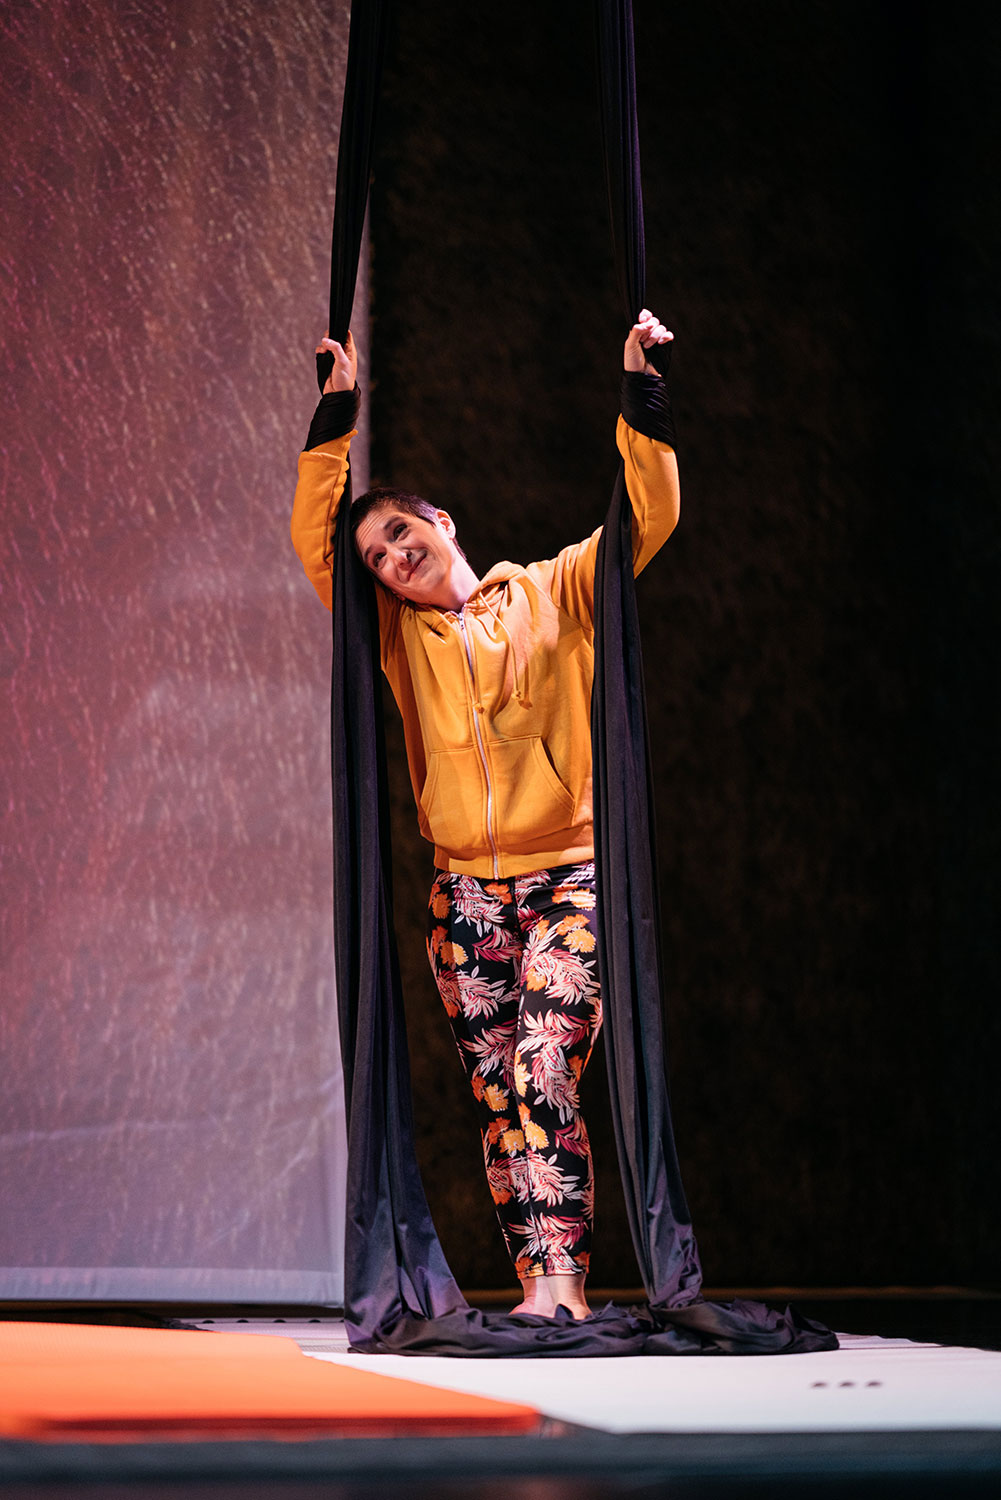 A full portrait shot of a white woman in yellow holding aerial silks in each hand and leaning.